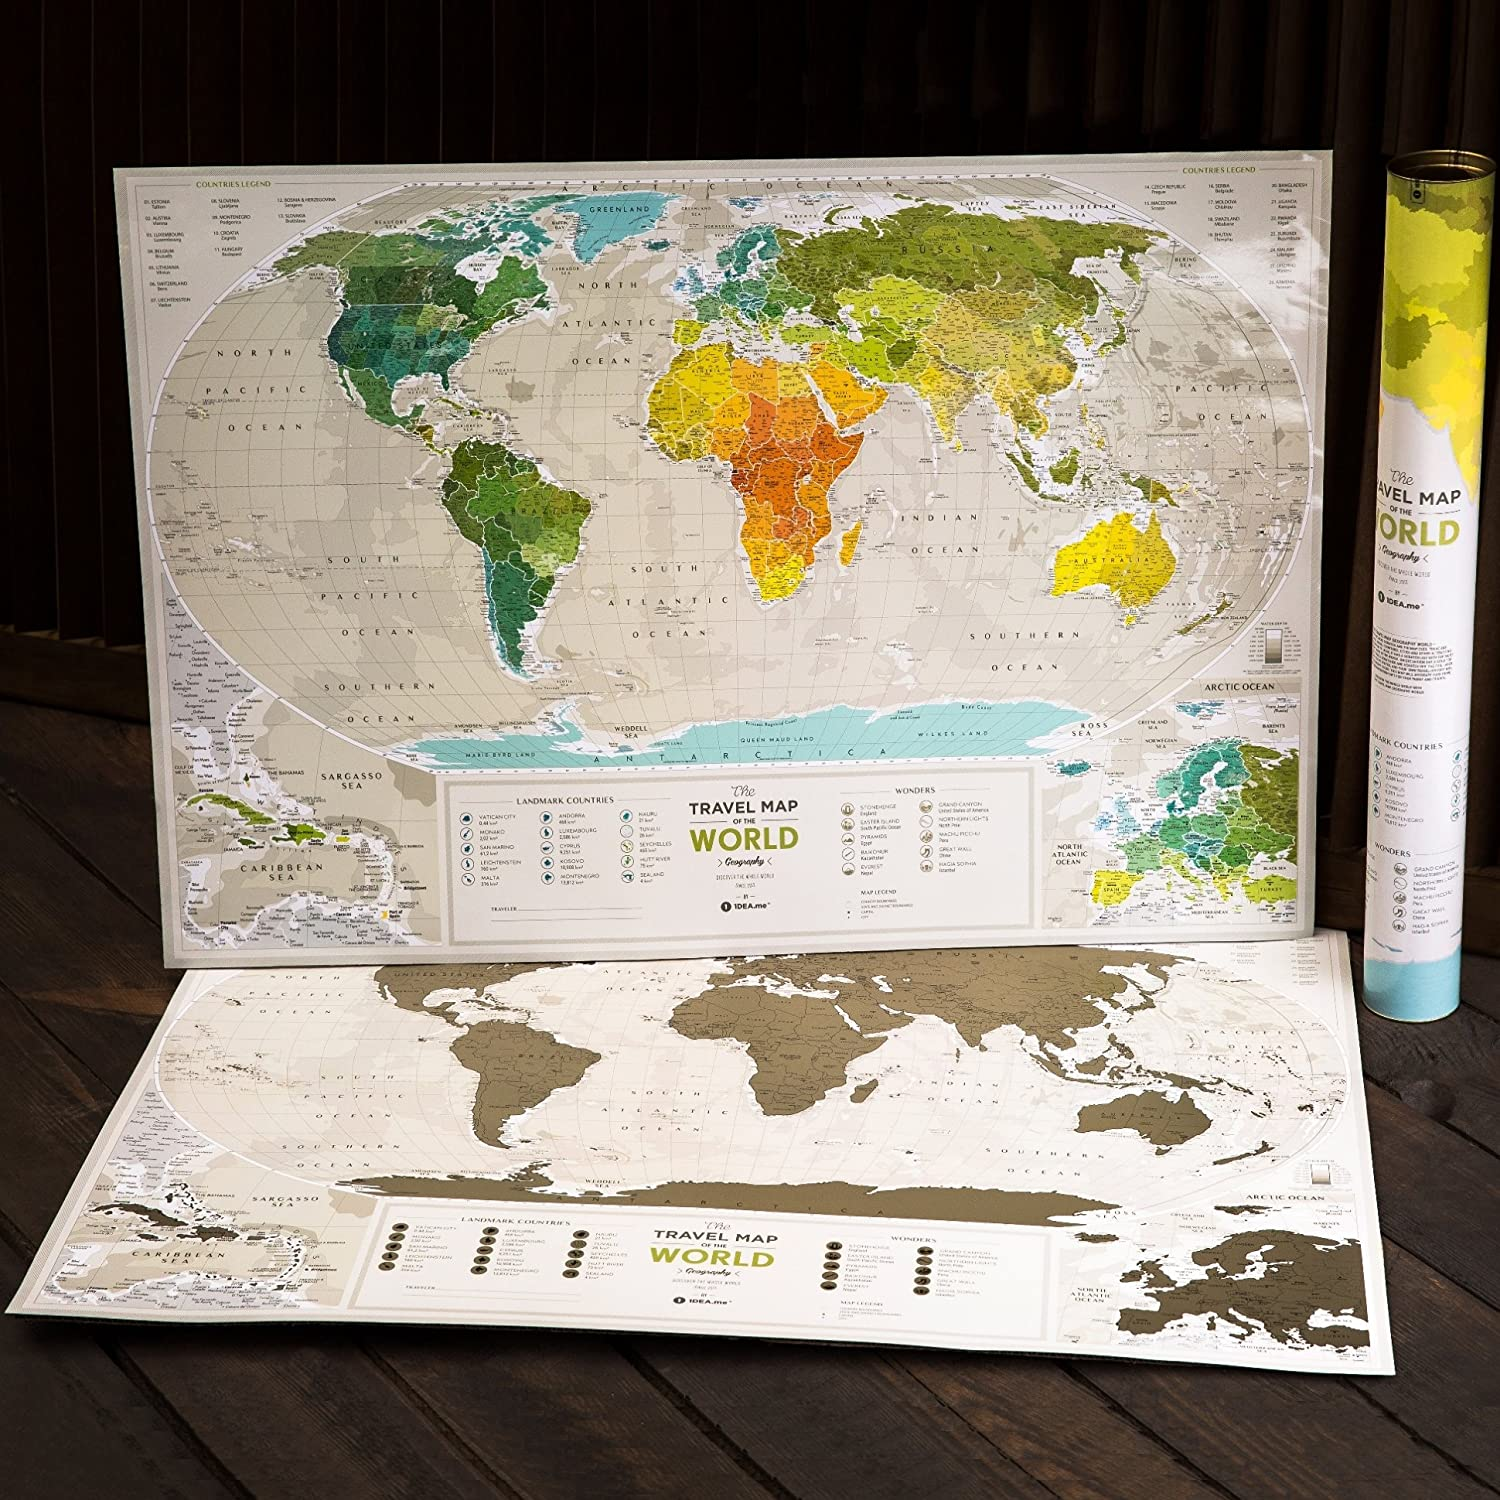 Amazon detailed scratch off world map premium edition 346 amazon detailed scratch off world map premium edition 346 x 236 large places ive been travel map you can scratch off over 10 000 cities gumiabroncs Images